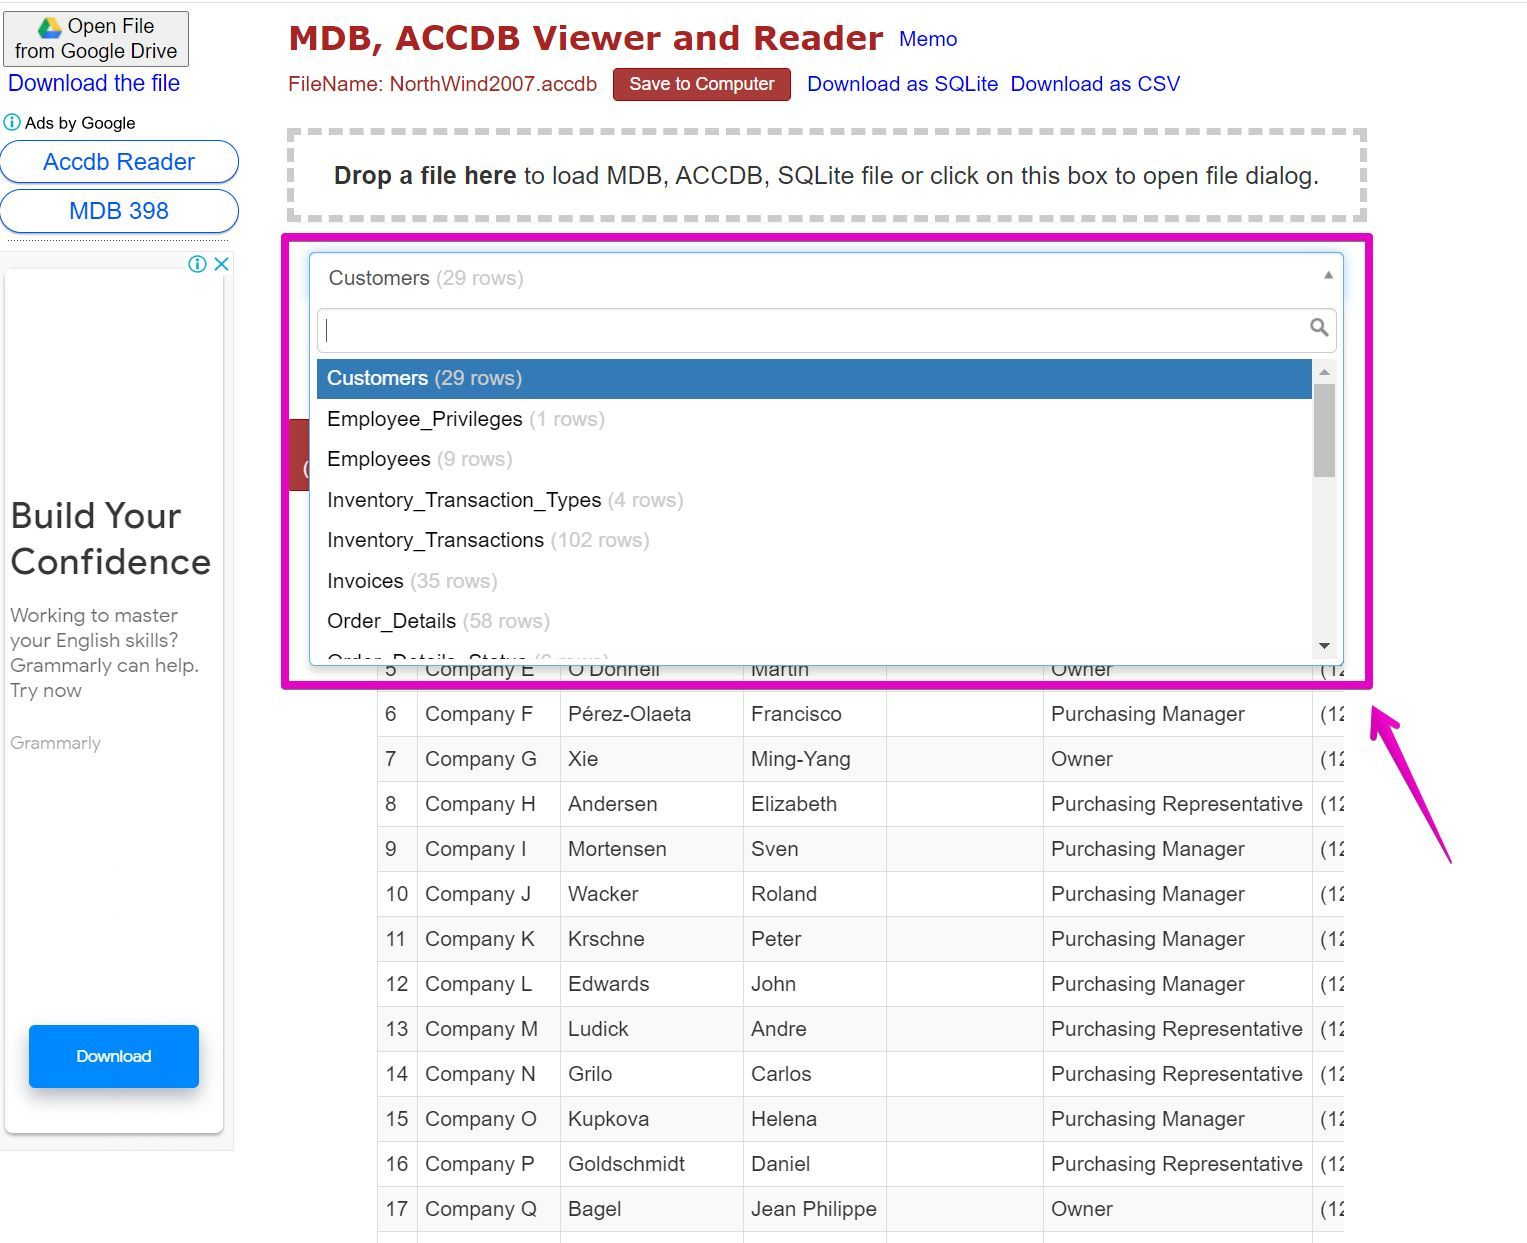 DB, ACCDB Viewer and Reader